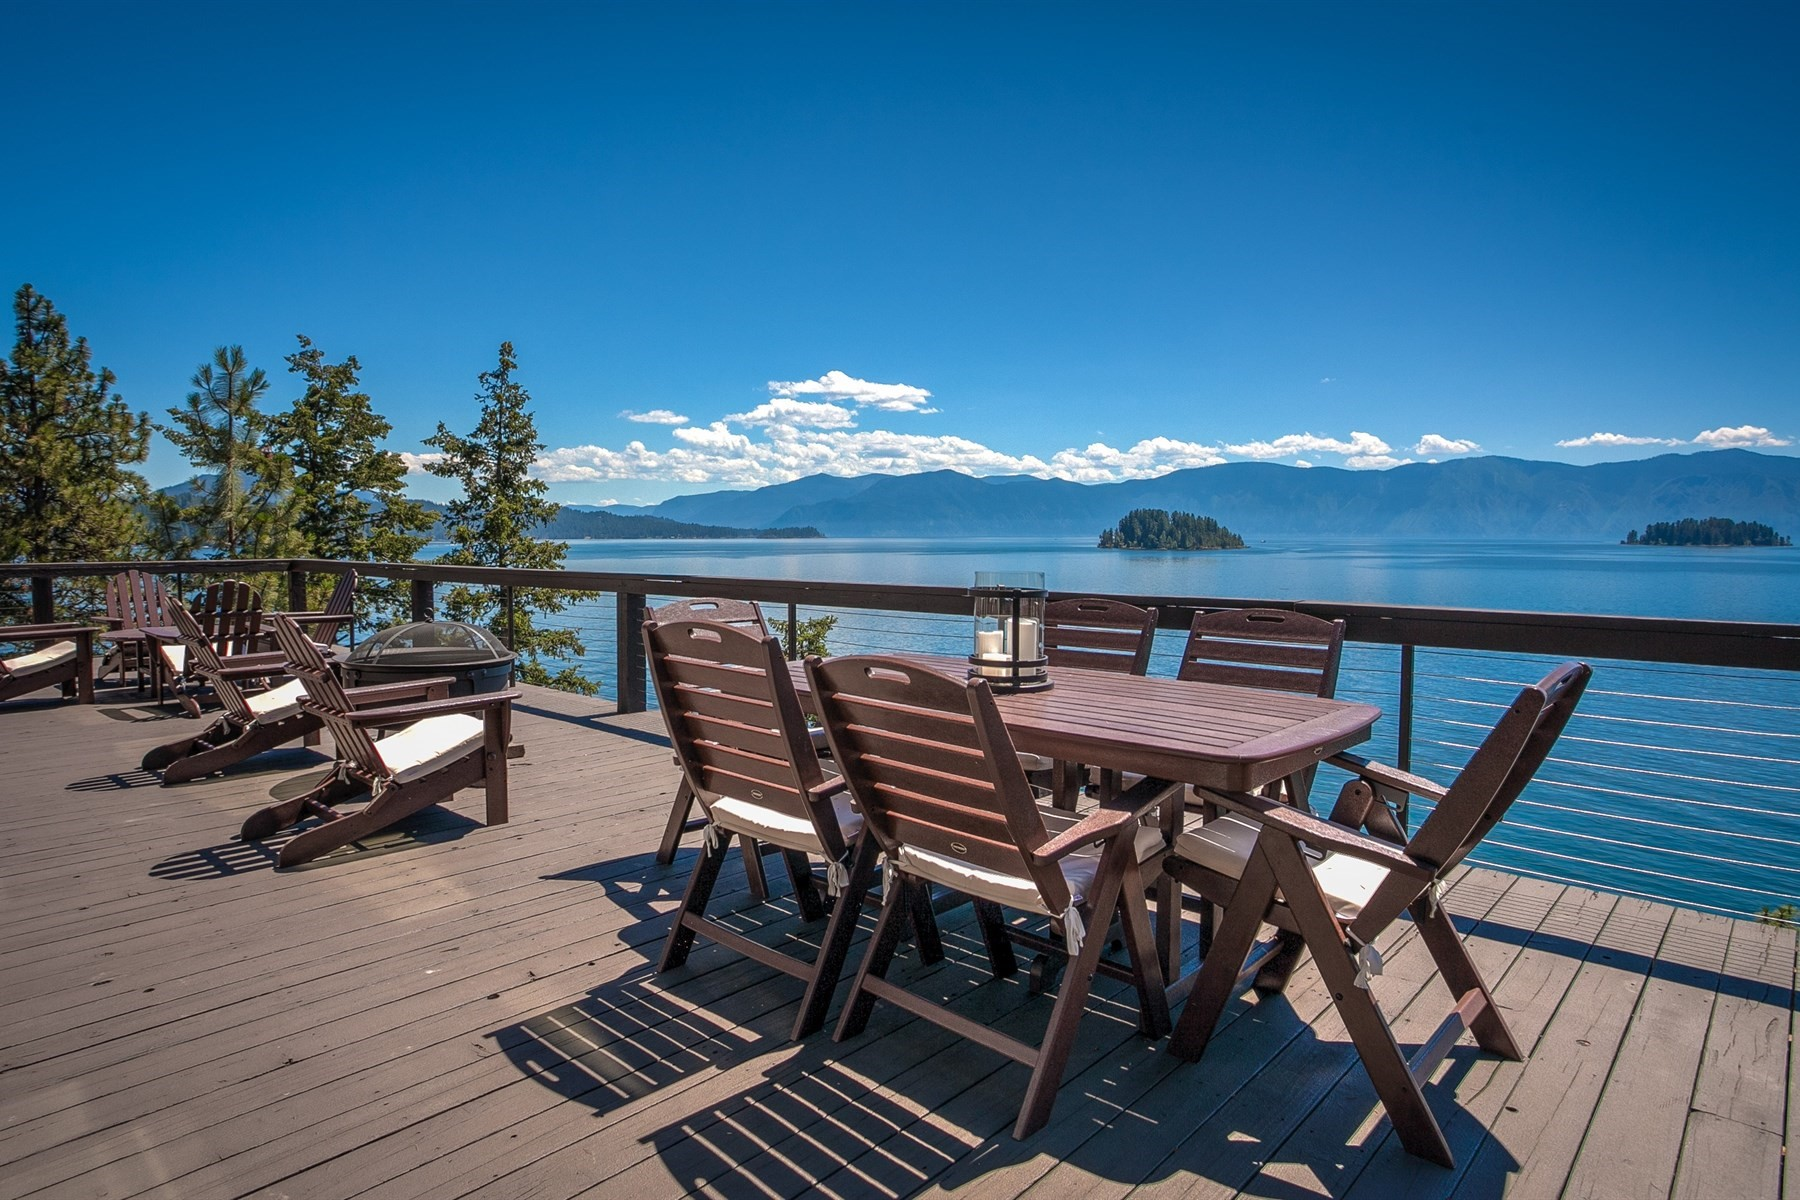 Single Family Homes for Sale at Exclusive Island Playcation 795 Warren Island Shore Hope, Idaho 83836 United States